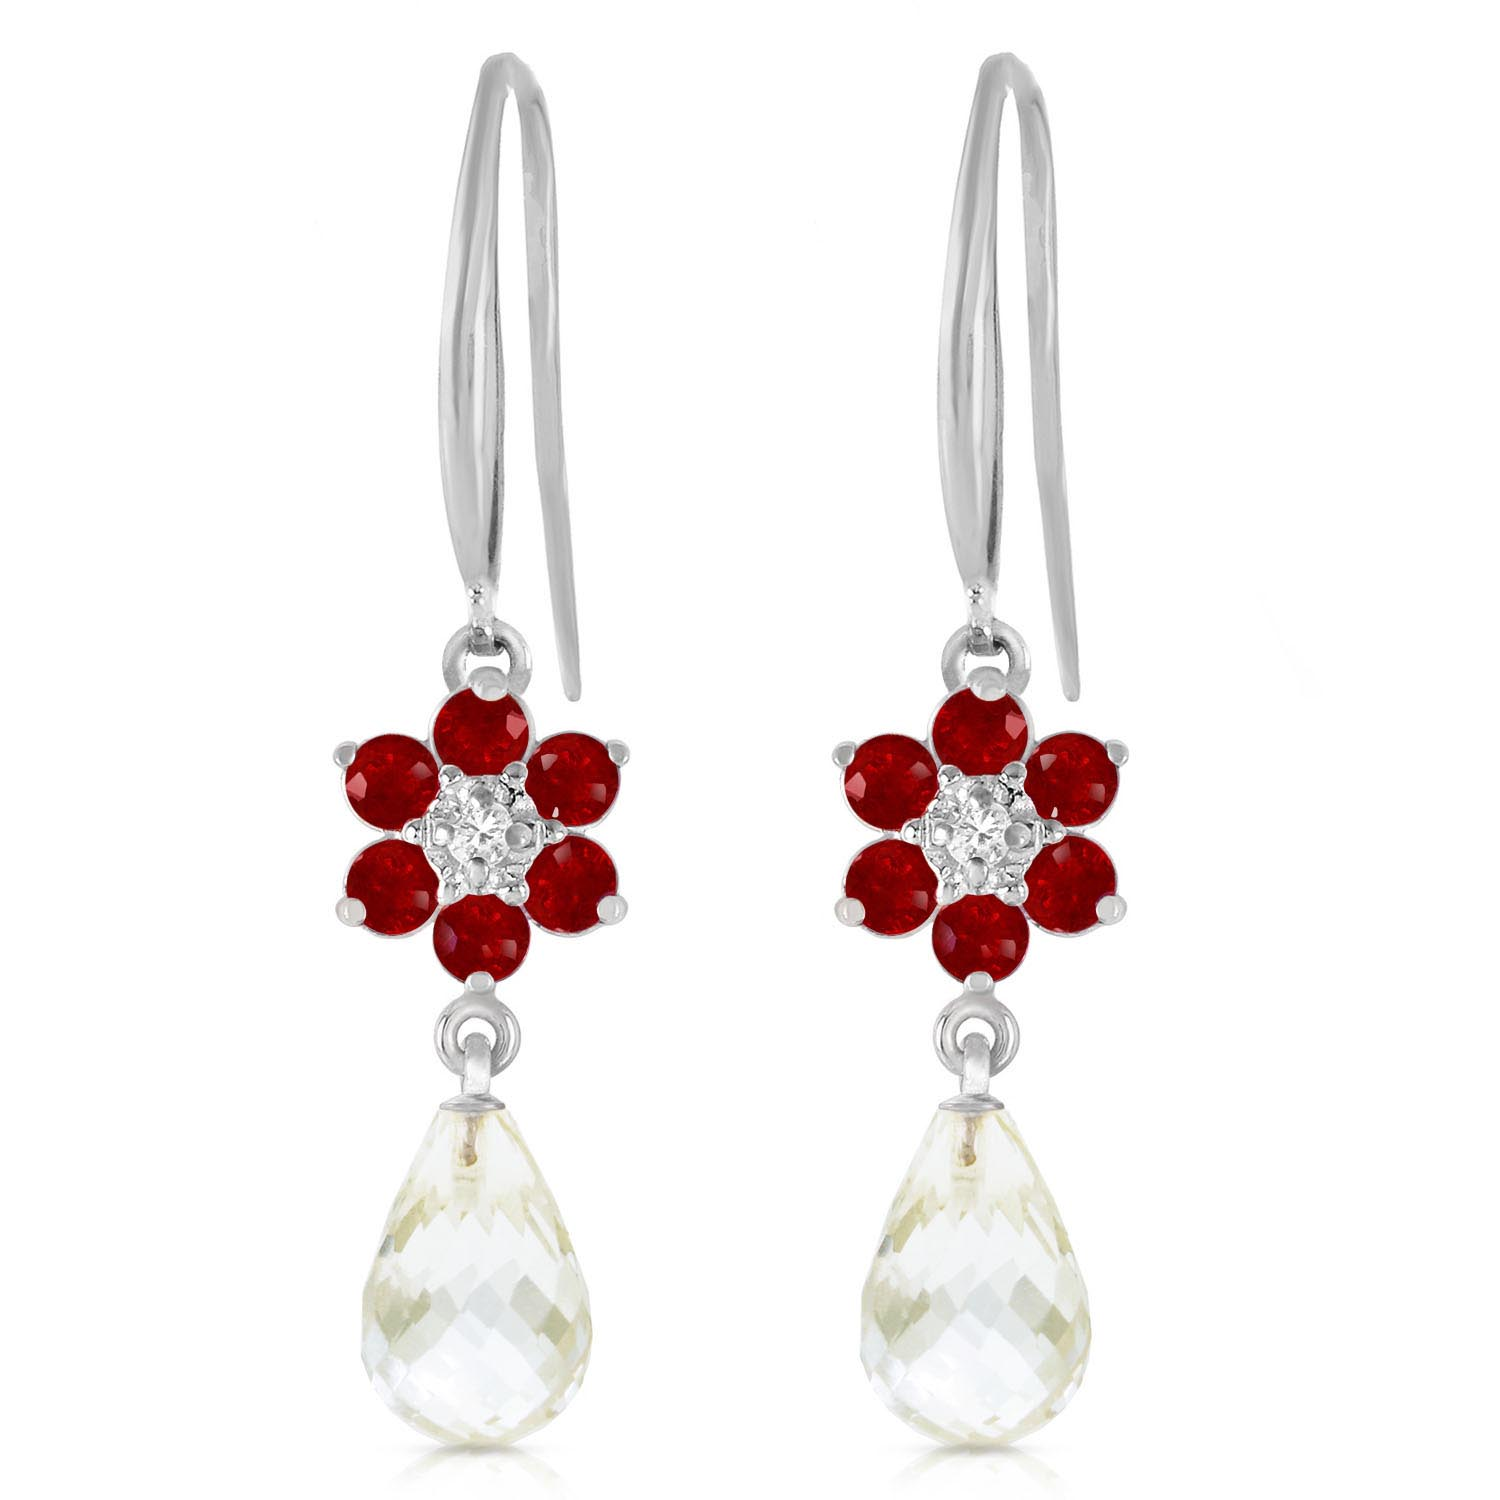 White Topaz, Diamond & Ruby Daisy Chain Drop Earrings in 9ct White Gold